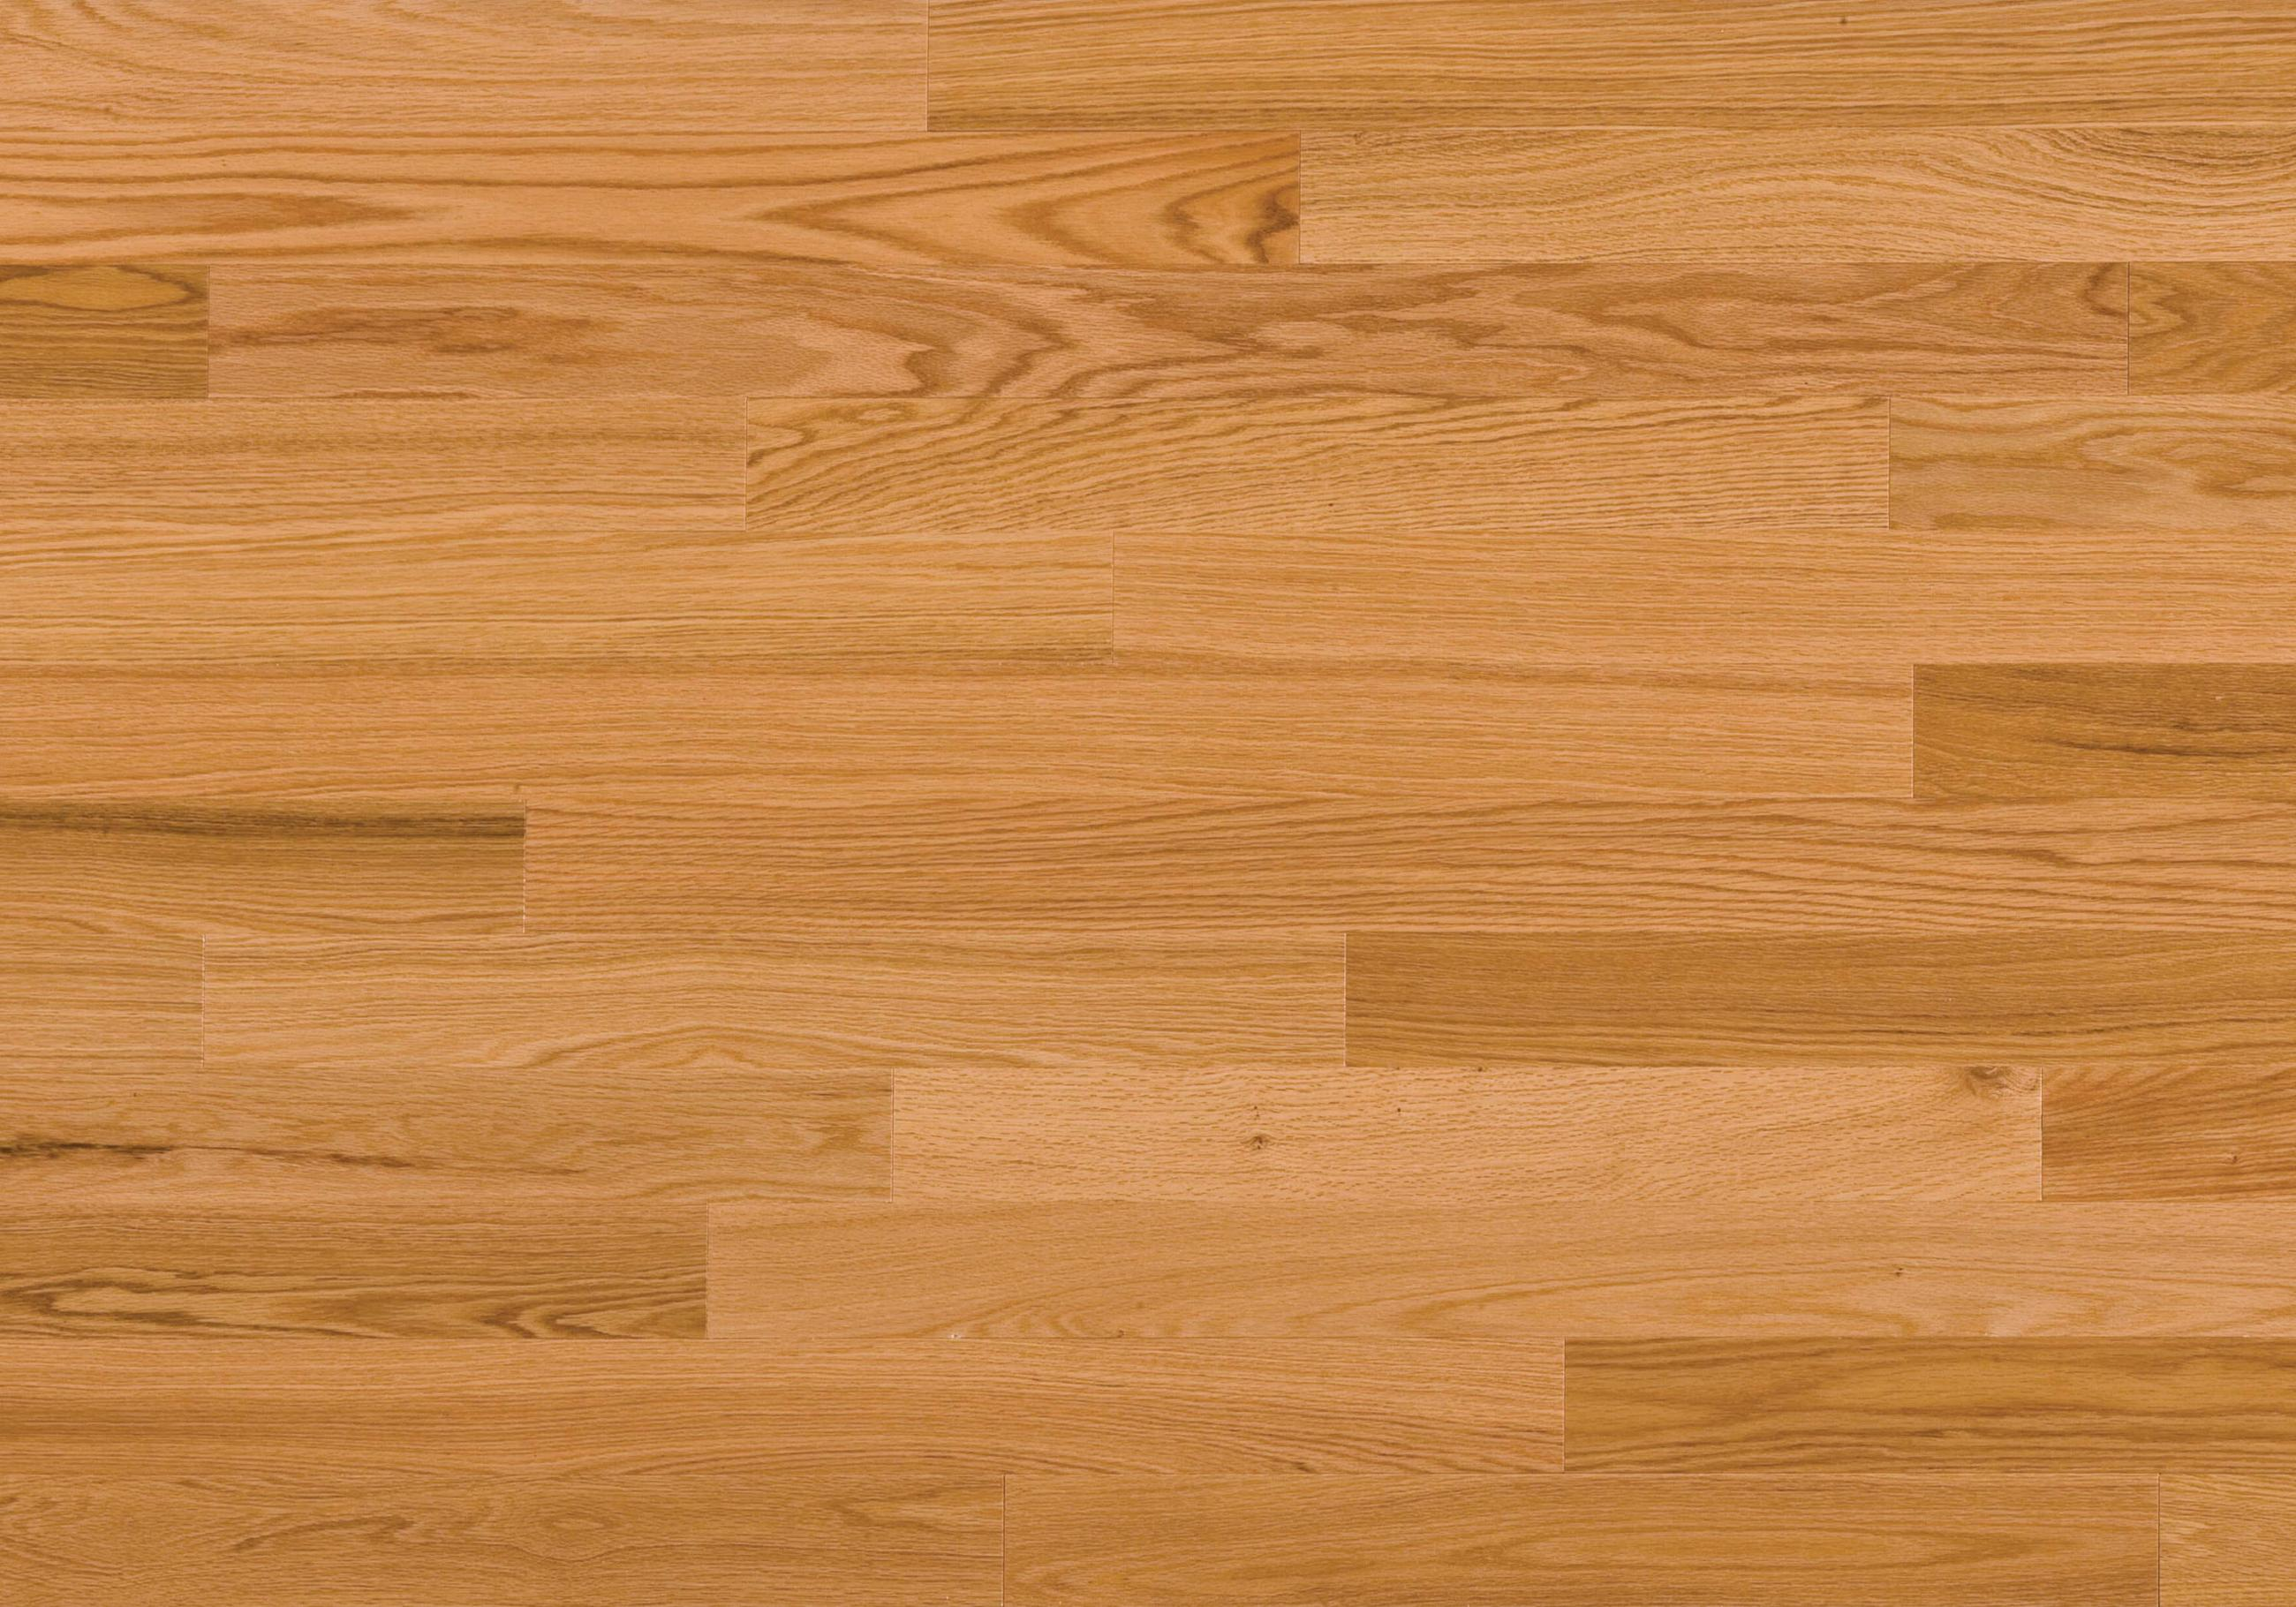 Lauzon ambiance collection red oak natural aa floors toronto for Natural oak wood flooring